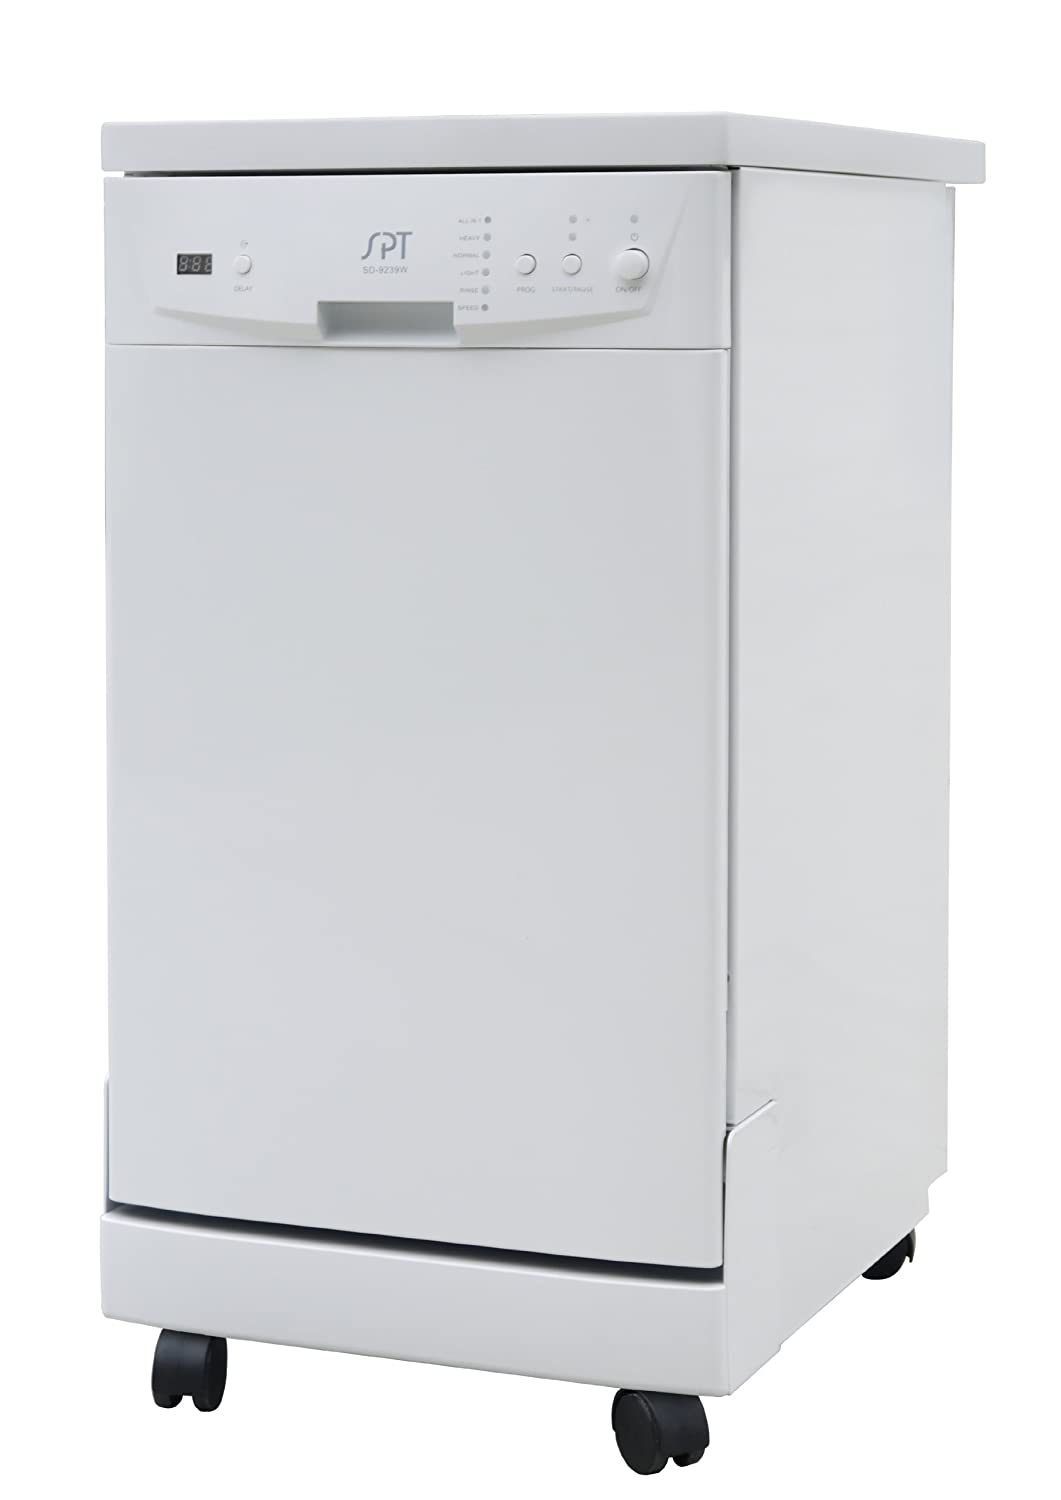 SPT SD-9241W Energy Star Portable Dishwasher, 18-Inch, White Sunpentown